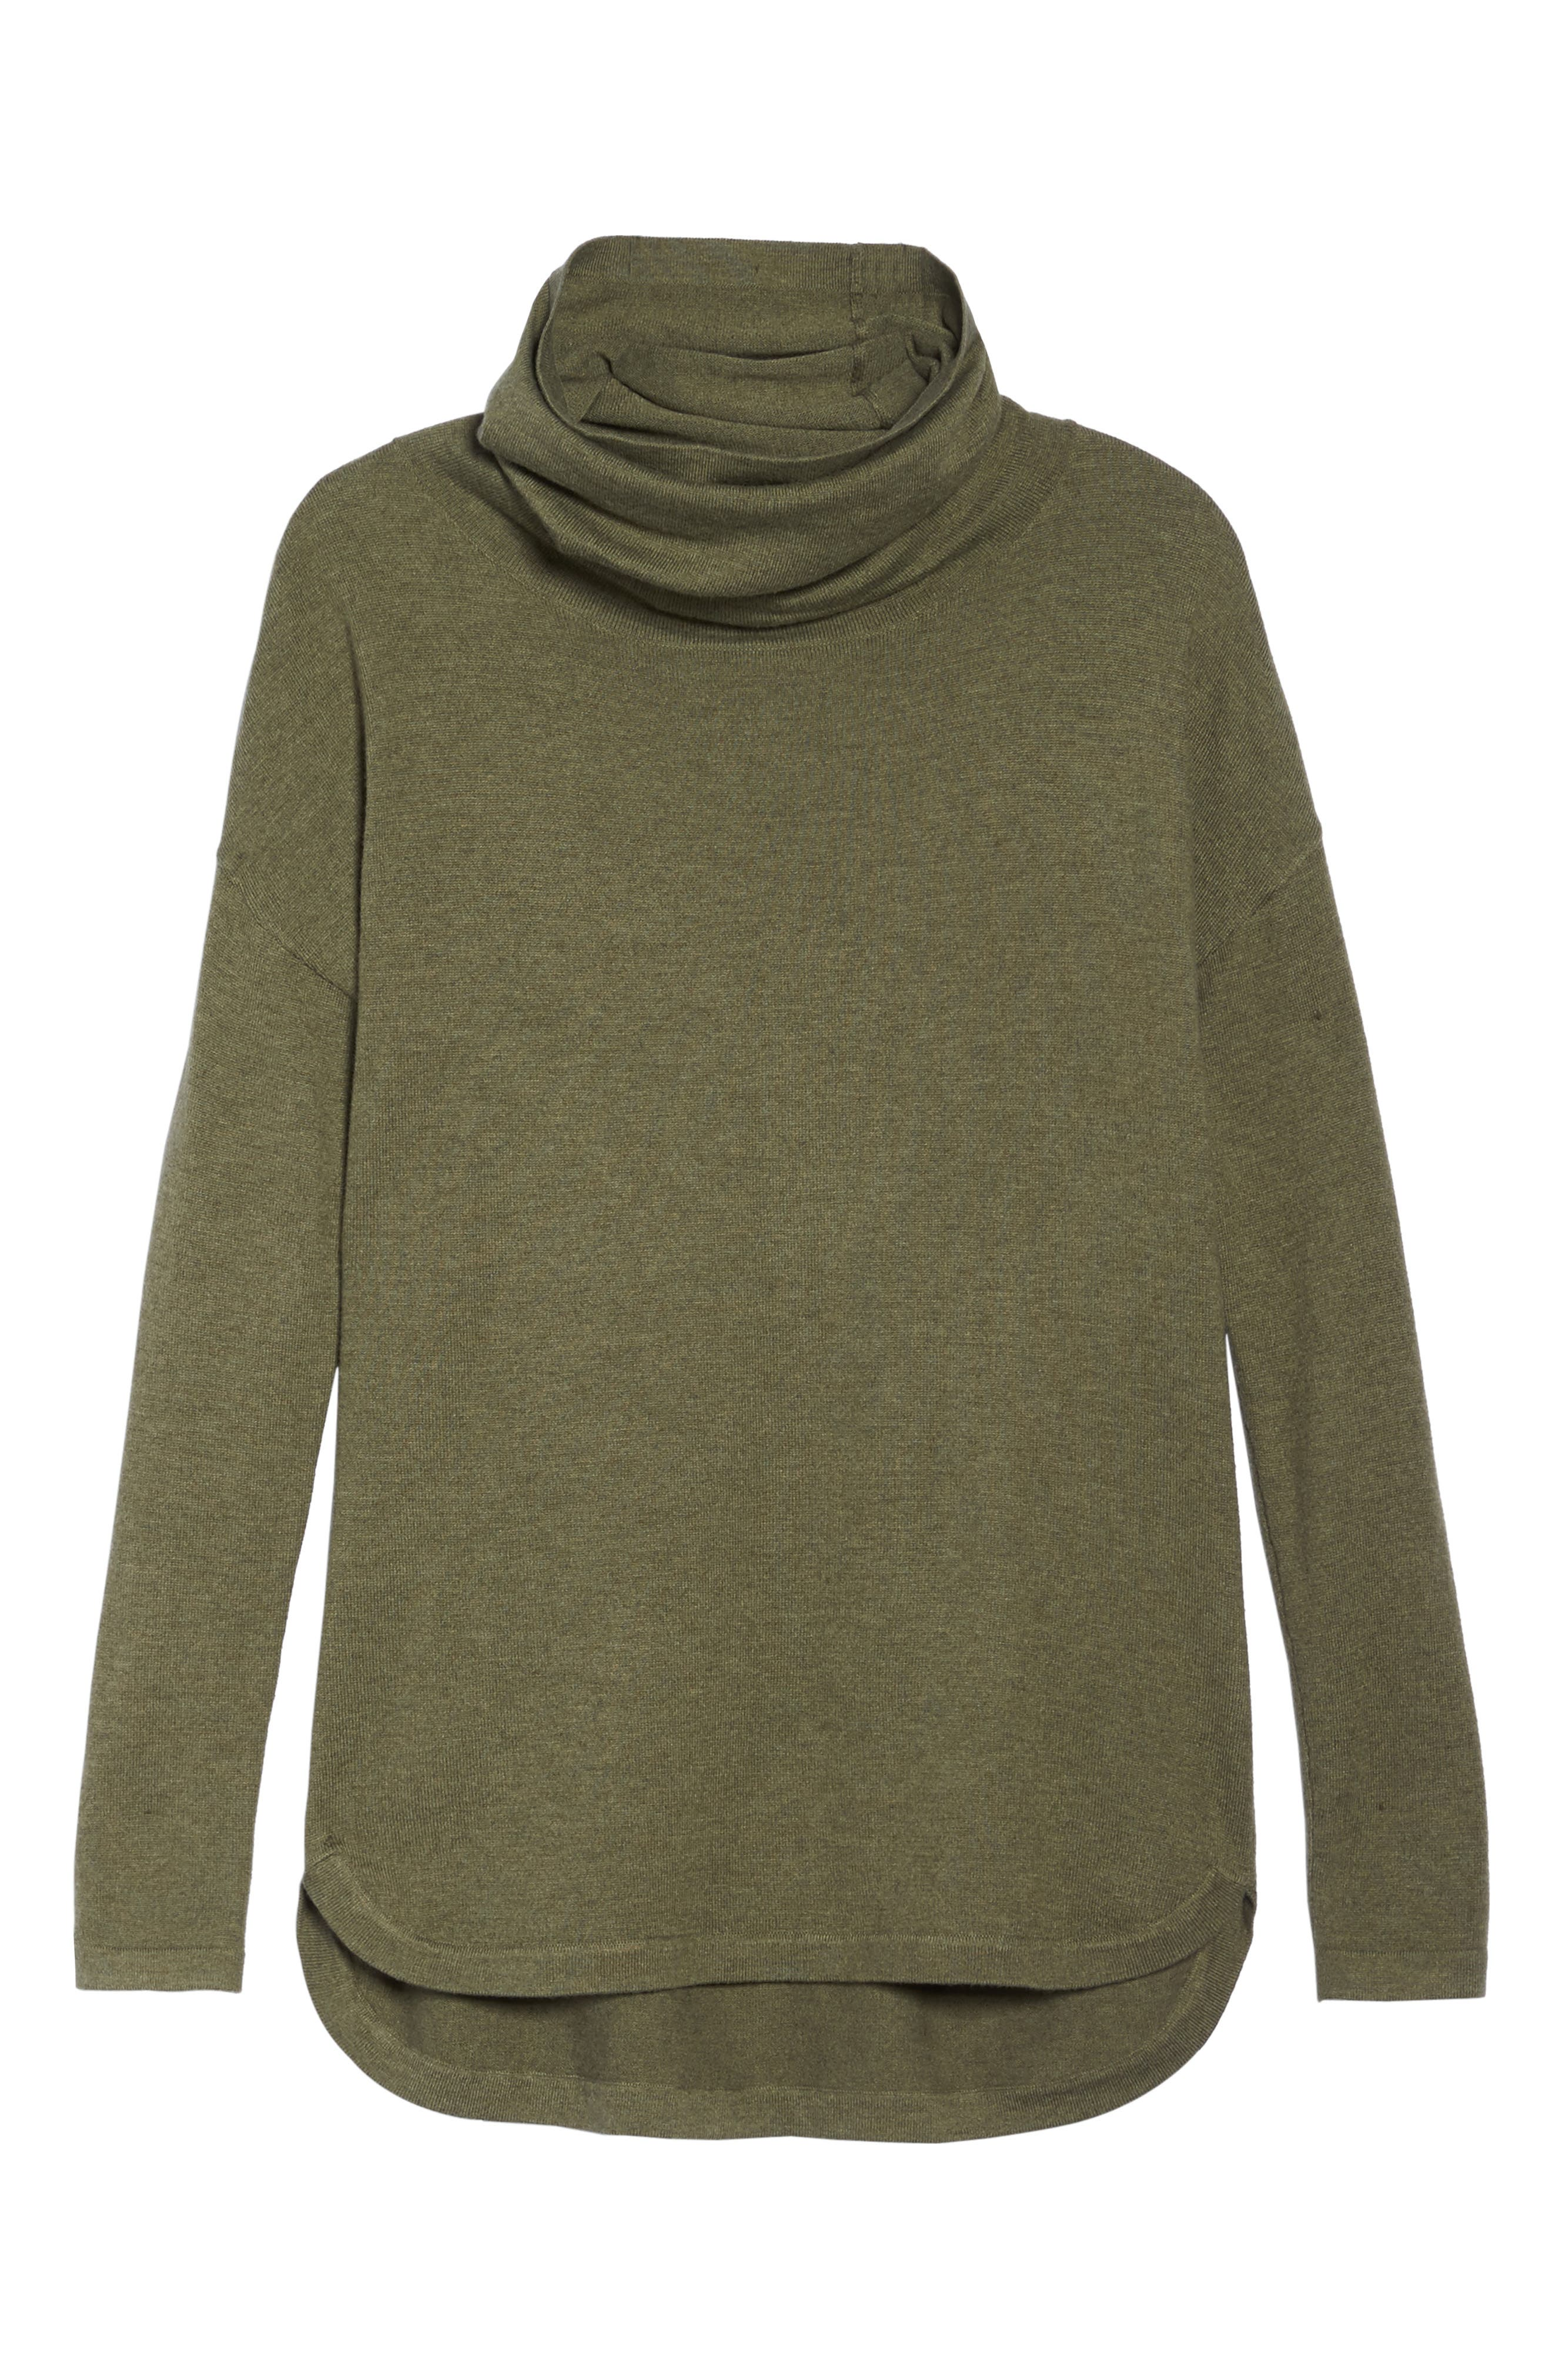 Woodland Tunic Sweater,                             Alternate thumbnail 7, color,                             Burnt Olive Green Heather